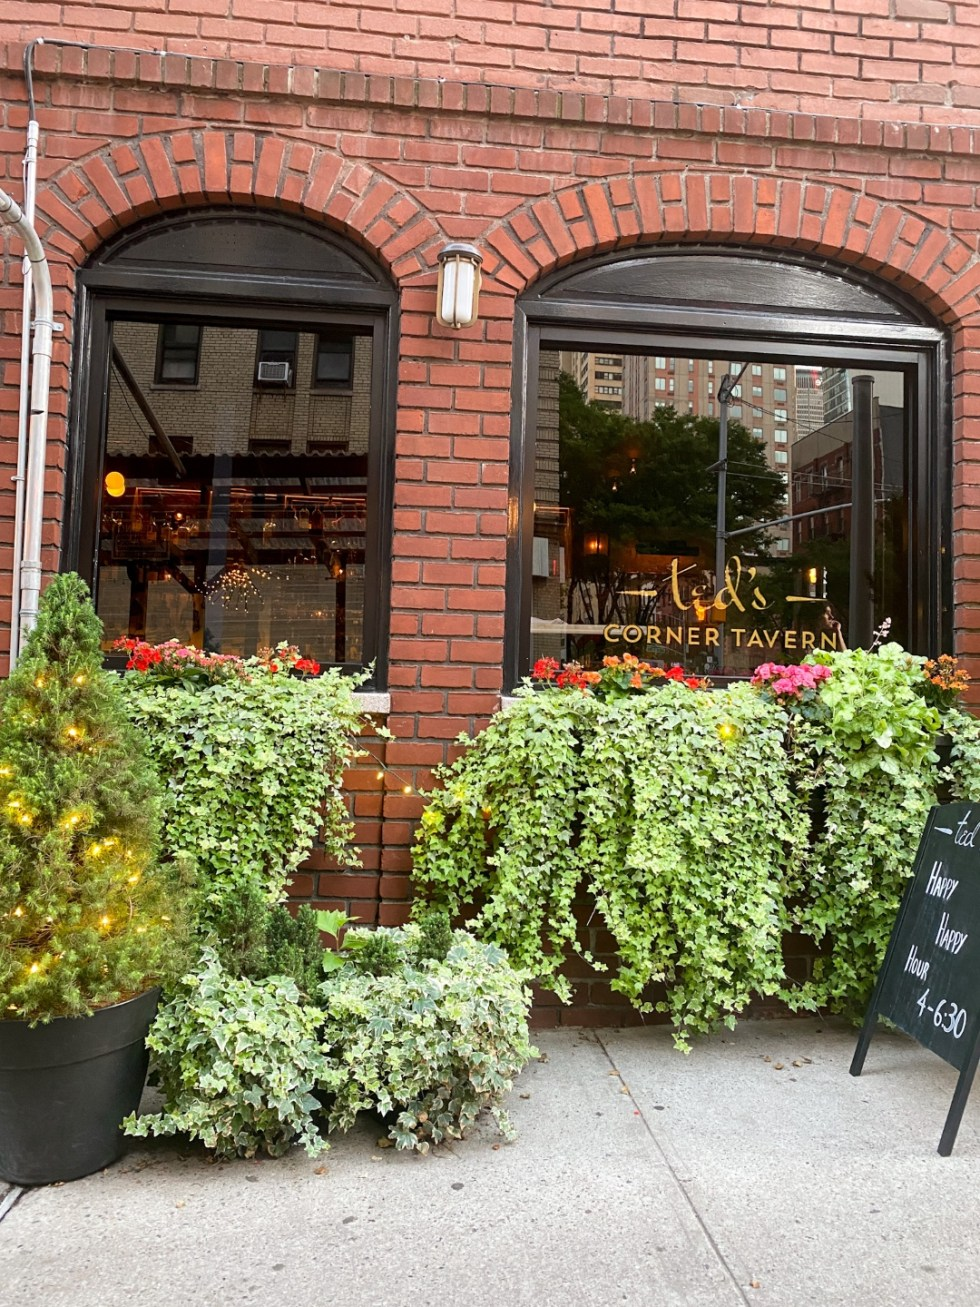 NYC Summer Weekend: Things to Do in NYC in the Summer - I'm Fixin' To - @imfixintoblog   NYC Summer Weekend by popular NC travel blog, I'm Fixin' To: image of Ted corner tavern.